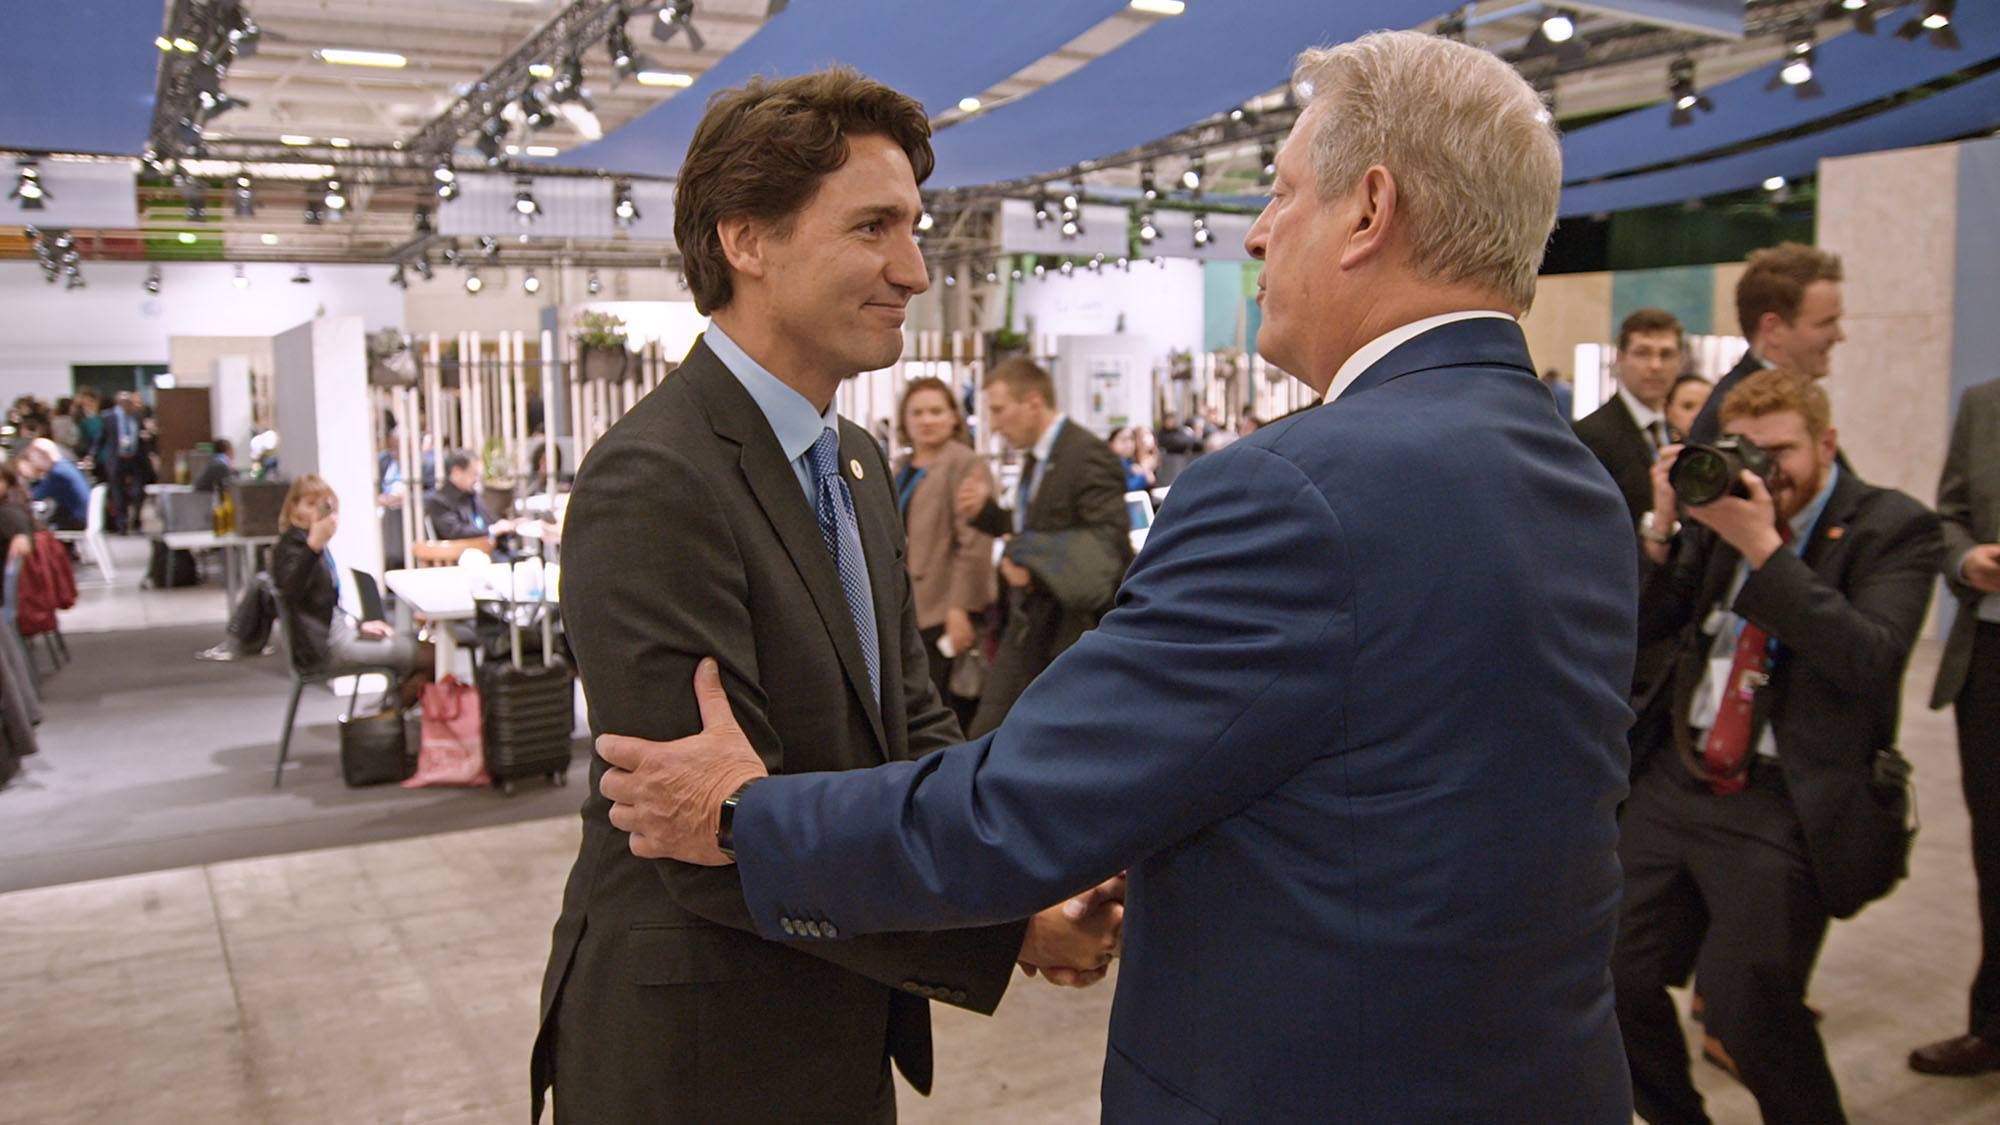 Al Gore with Justin Trudeau at the UN Climate Conference in Paris, as seen in An Inconvenient Sequel: Truth To Power (Paramount Pictures and Participant Media)